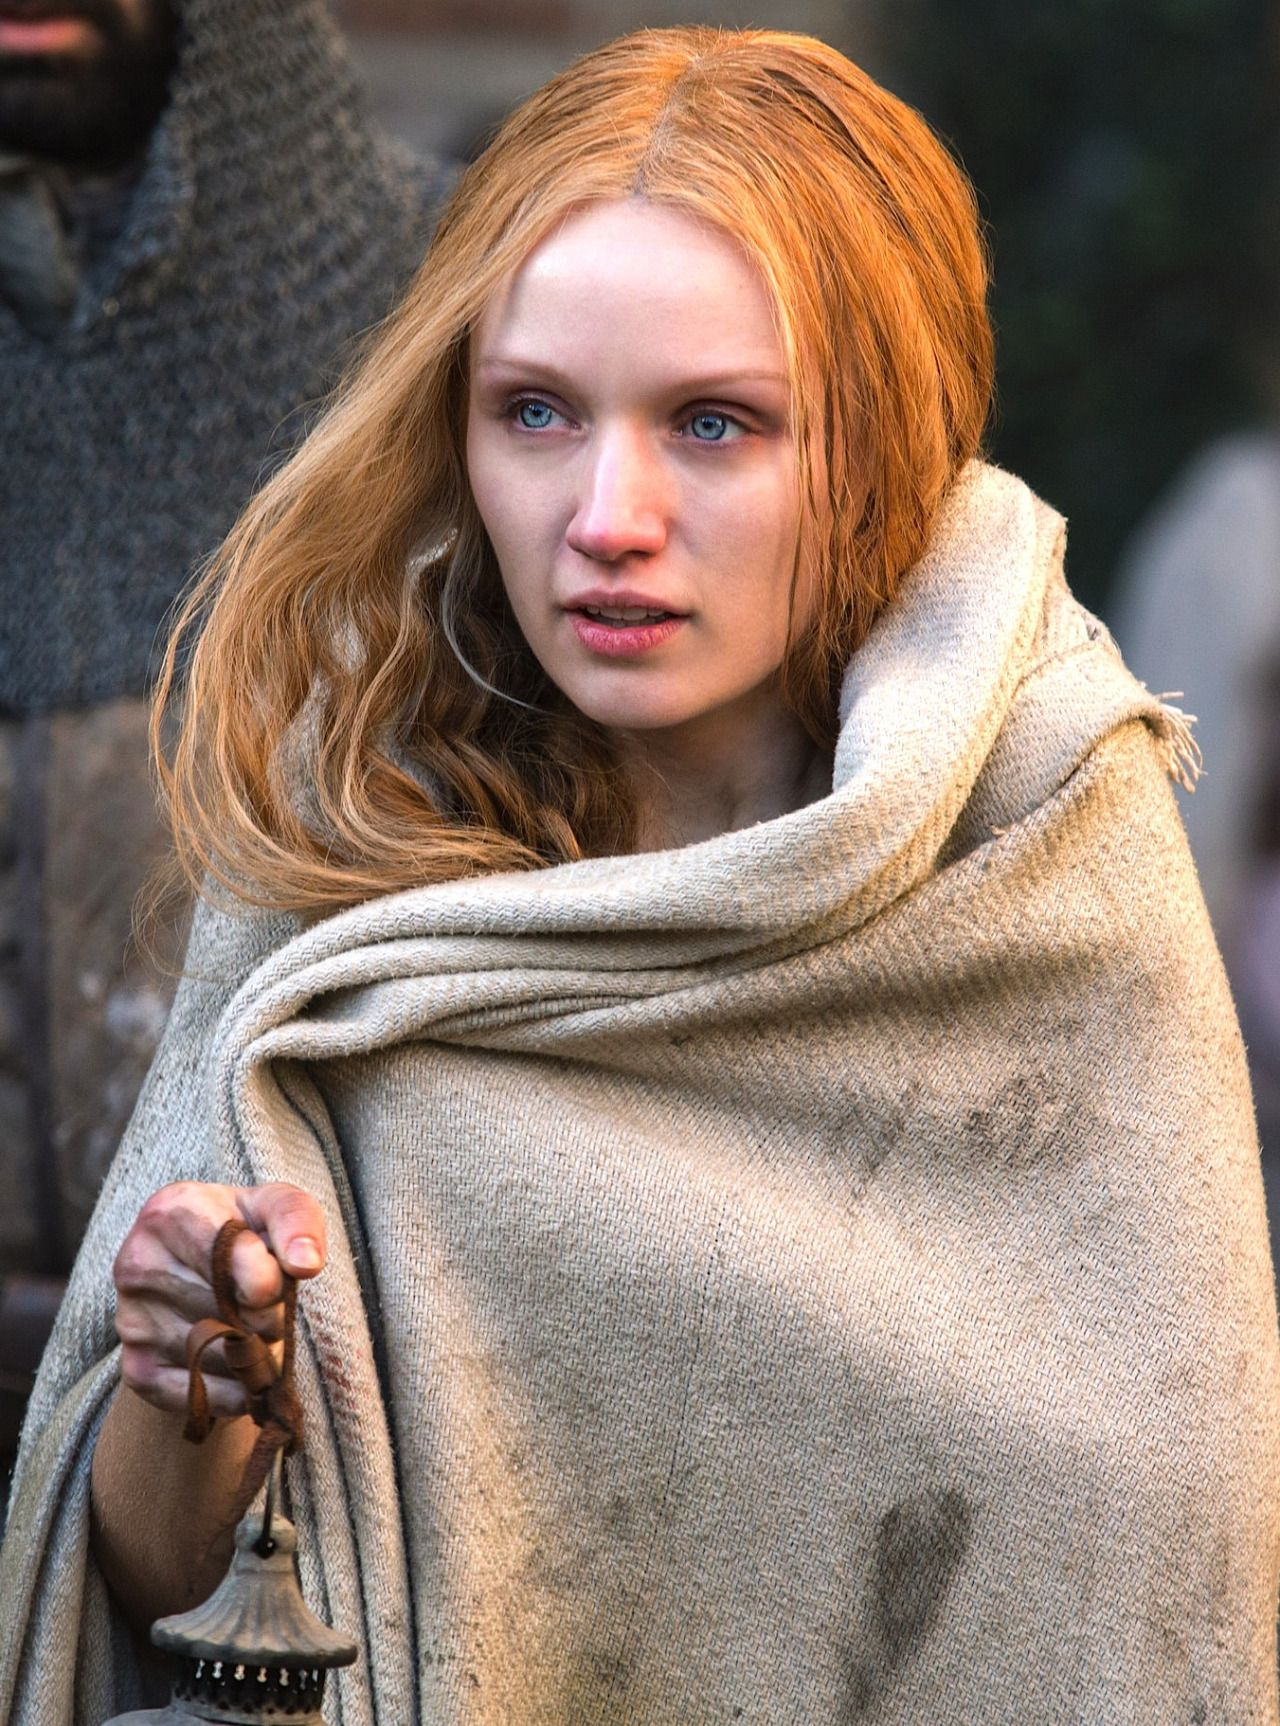 Watch Emily Berrington (born 1986) video